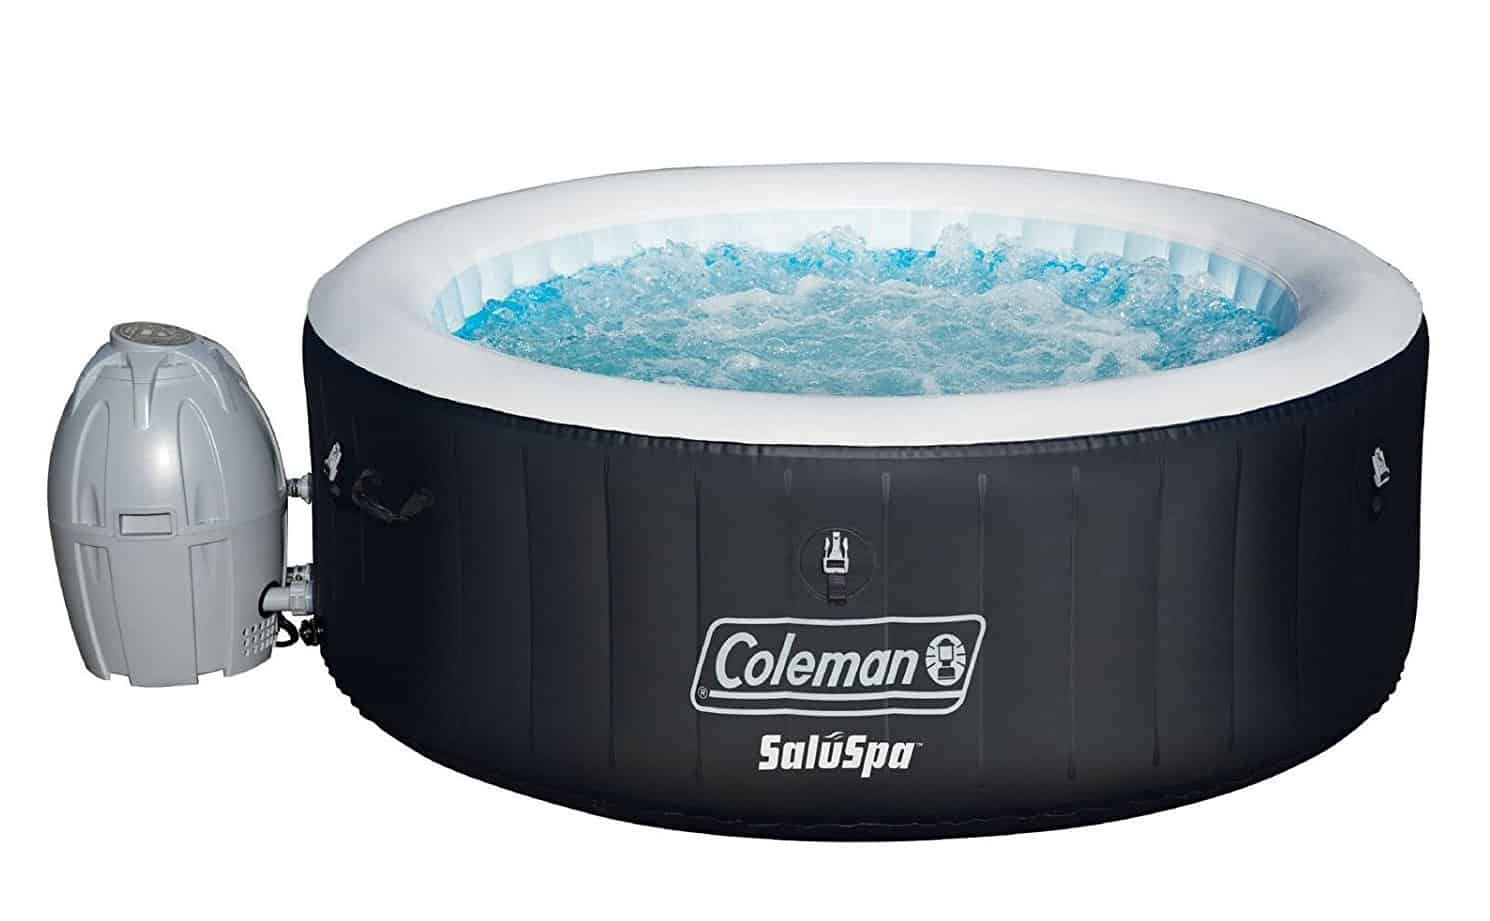 Best Inflatable Hot Tub - Reviews, Ratings & Buying Guide